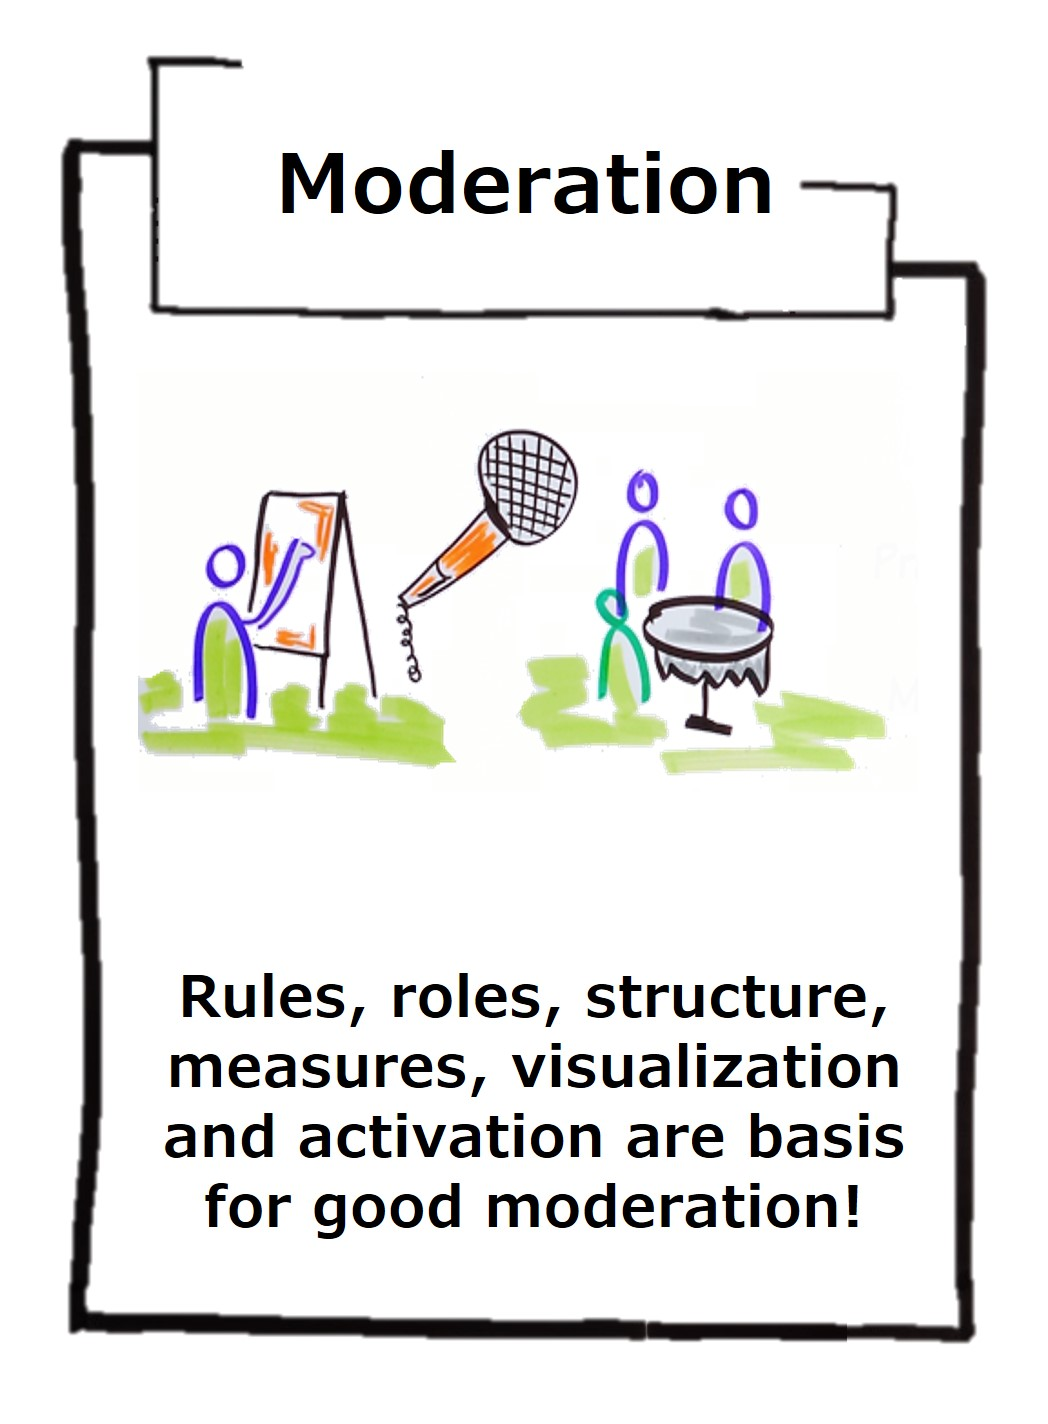 Good moderation activates everyone and produces good results. A good moderator pays attention to the resources of everyone involved and takes everyone seriously!